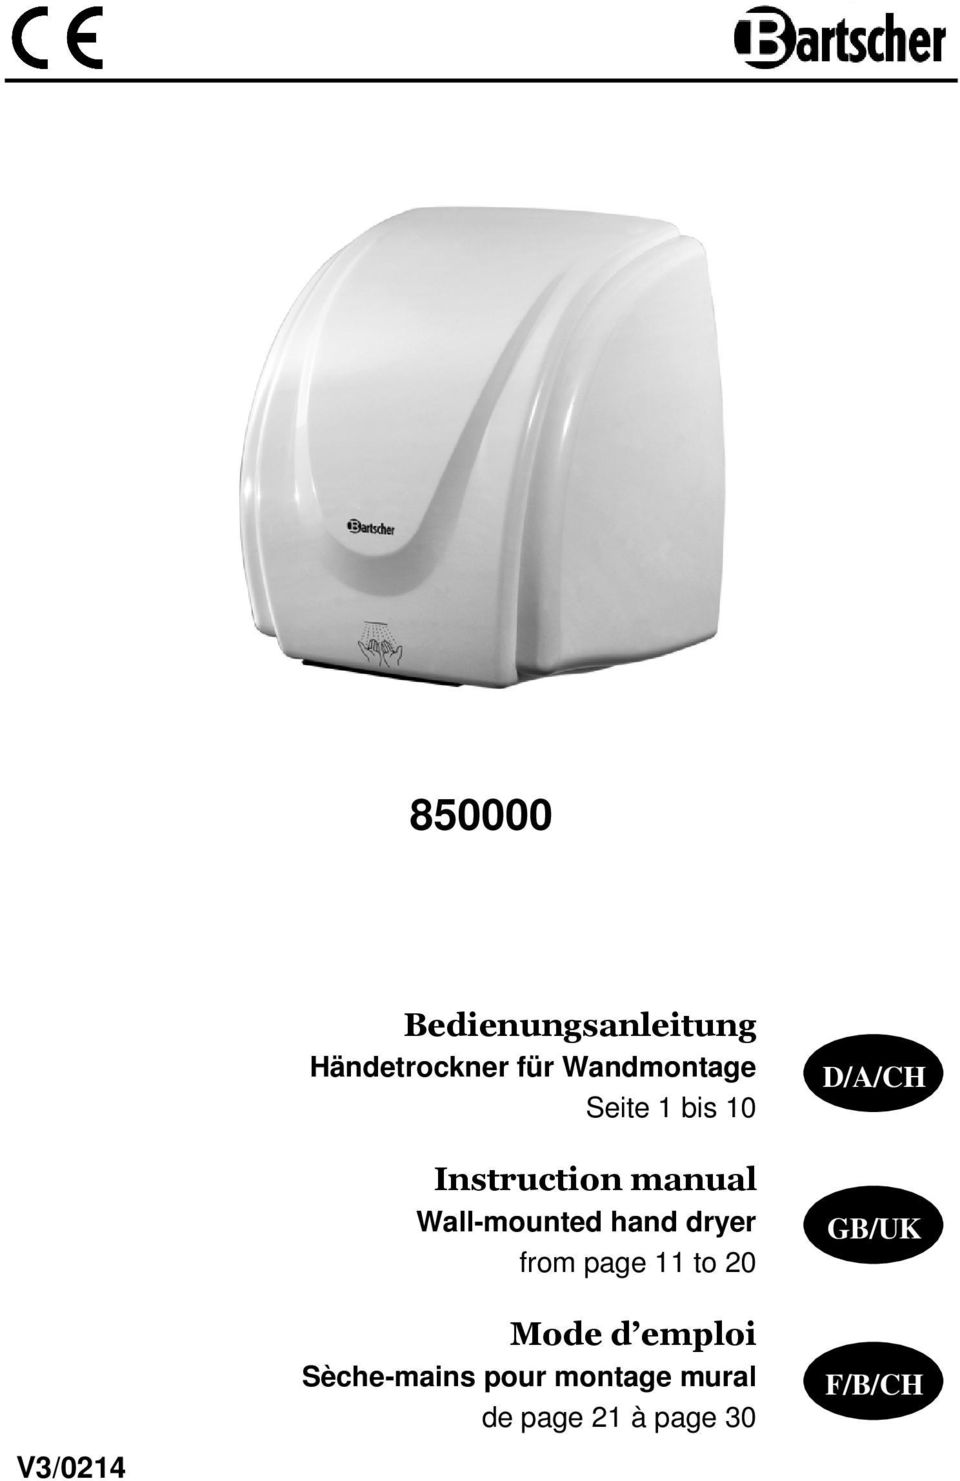 Wall-mounted hand dryer from page 11 to 20 Mode d emploi